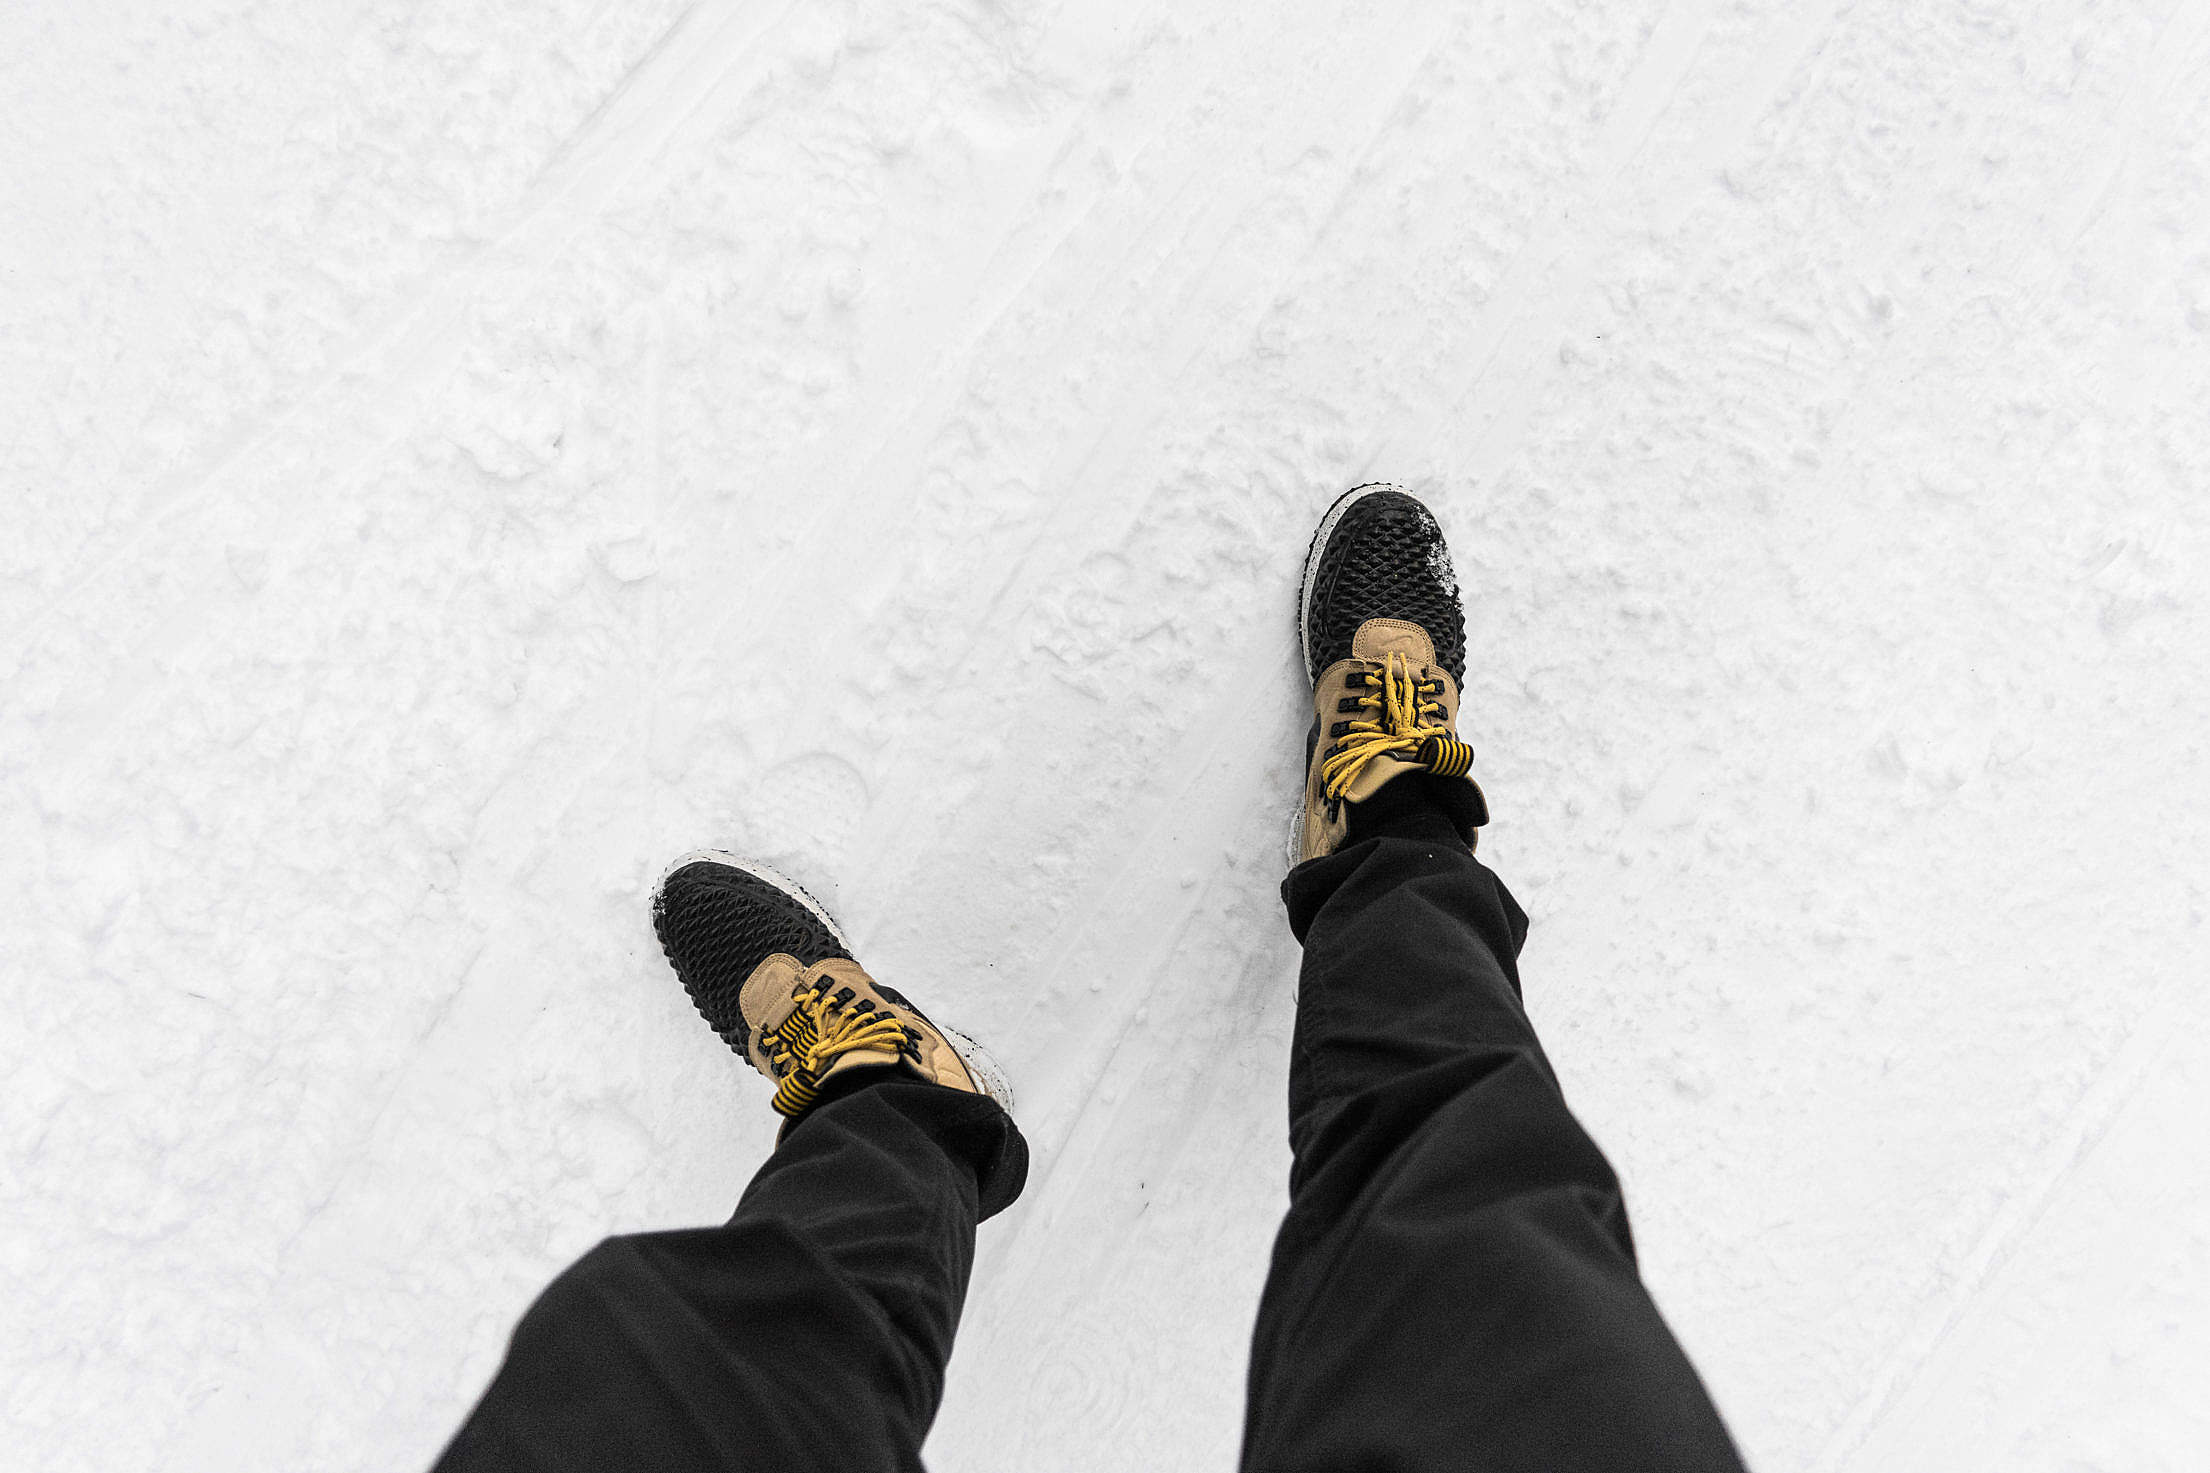 Man in Winter Shoes on Snow Covered Road FPV Free Stock Photo